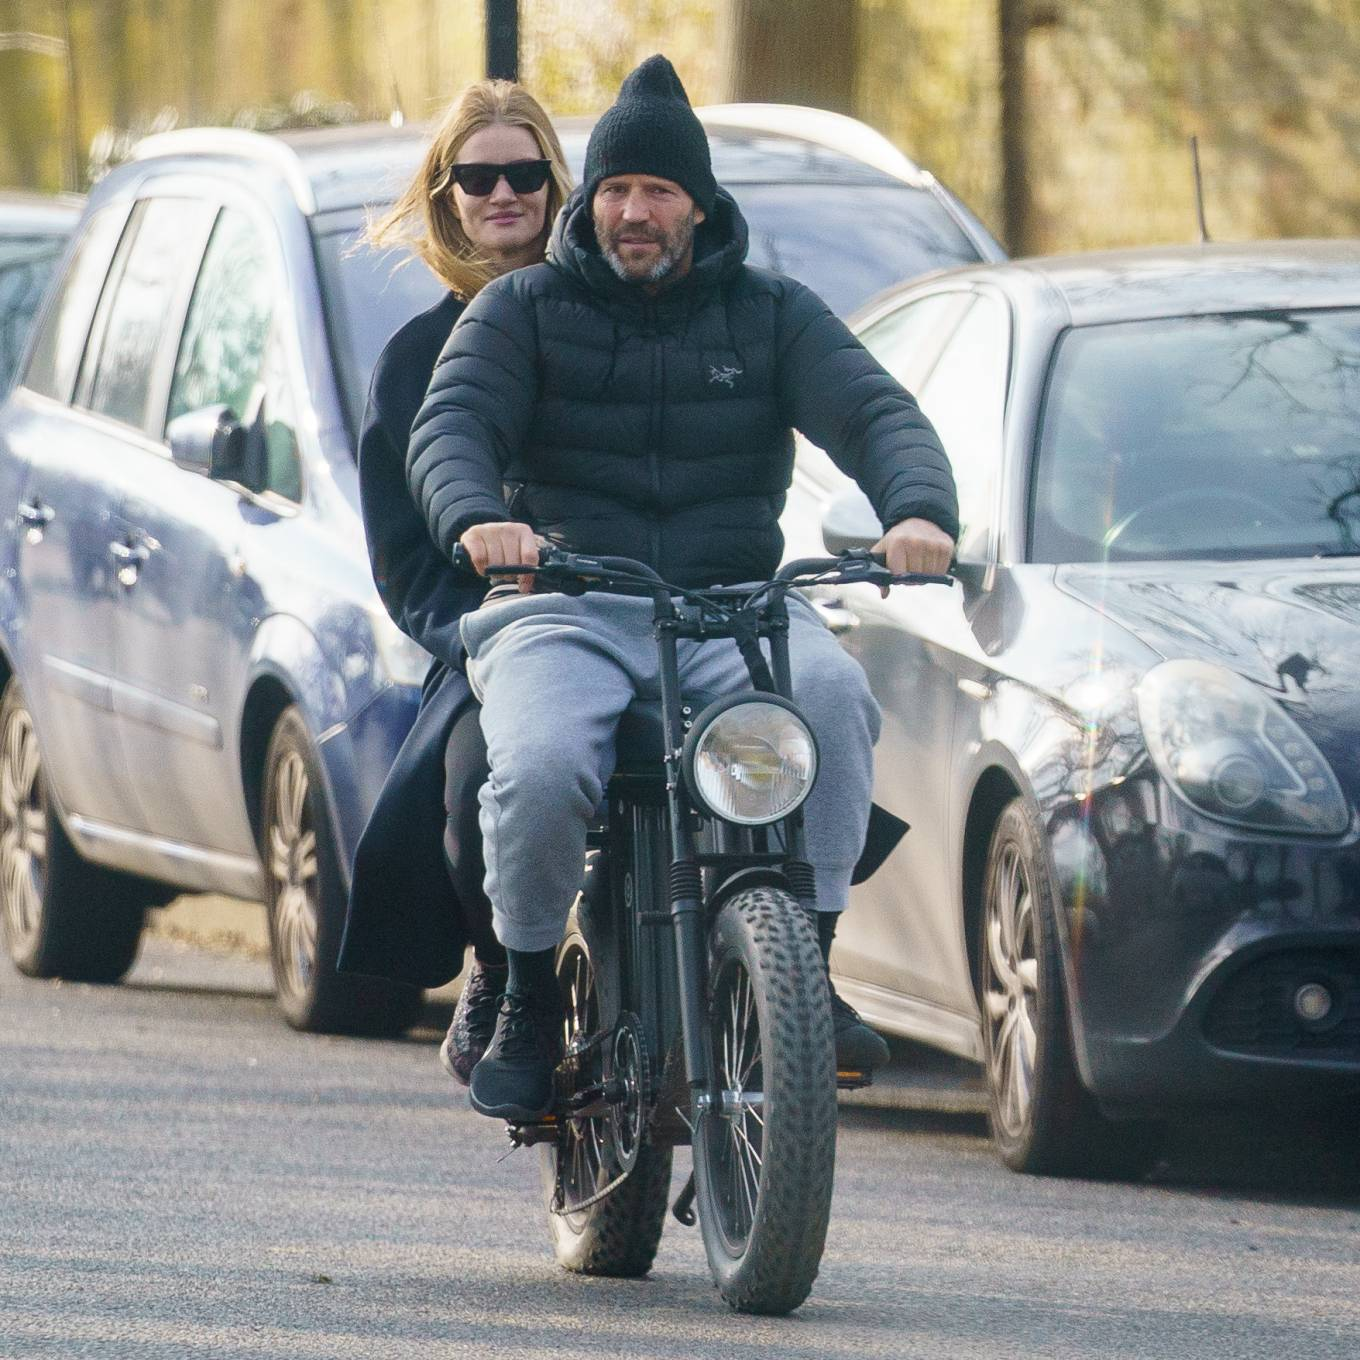 Rosie Huntington-Whiteley 2021 : Rosie Huntington-Whiteley – With Jason Statham ride electric bike in London-10